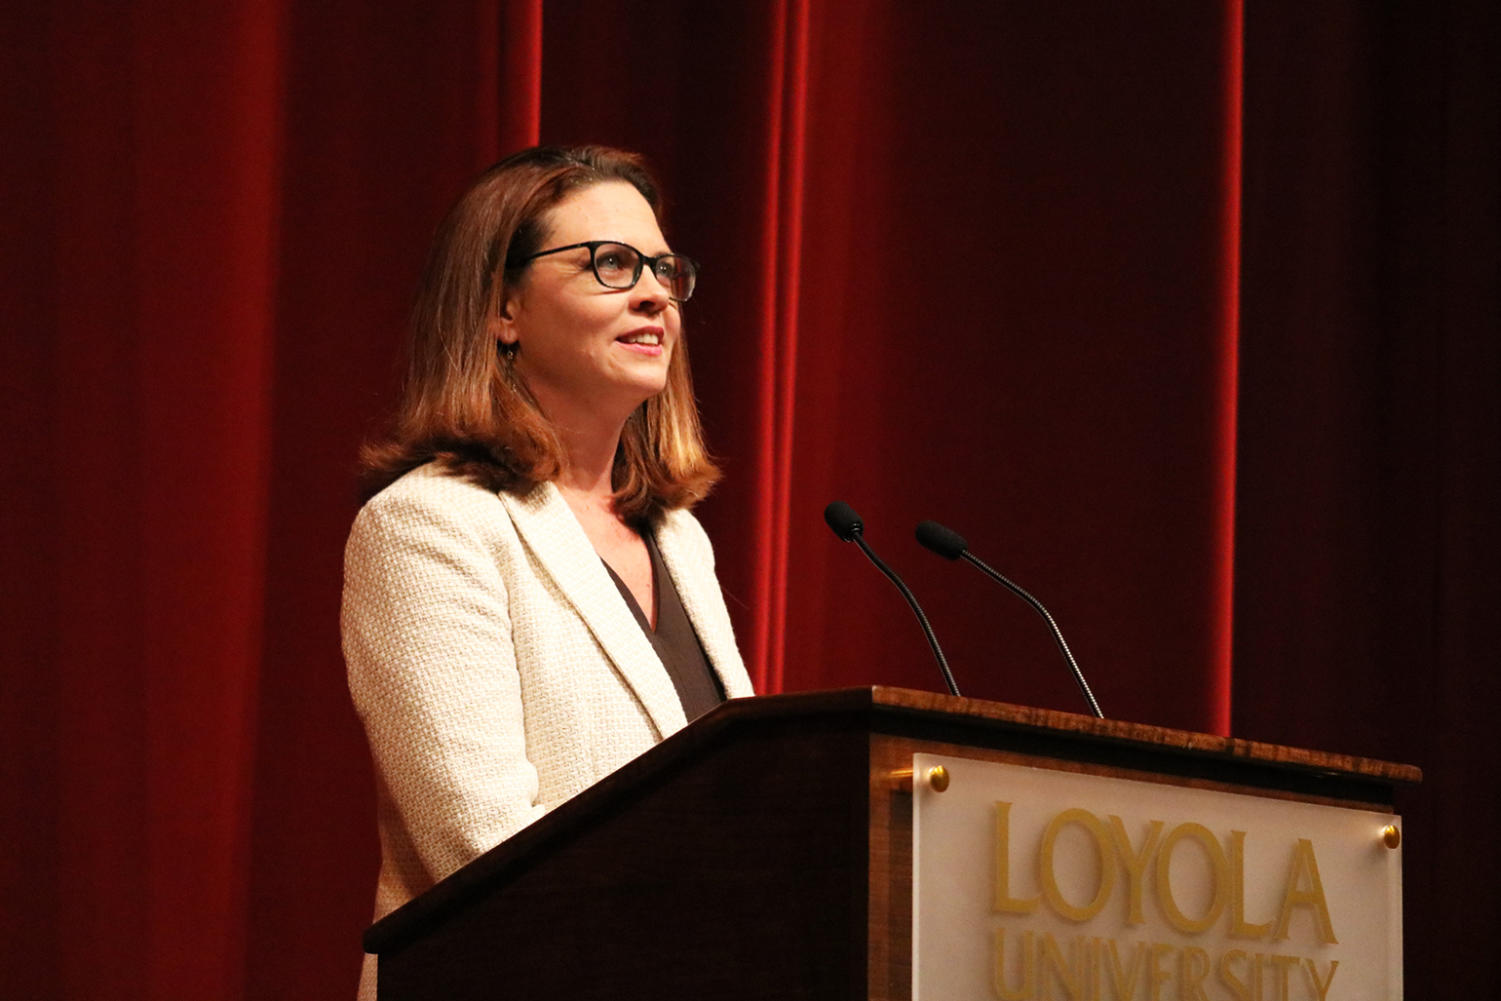 President Tania Tetlow speaks to the faculty of Loyola at the President's Convocation Fall 2018 on Monday, August 13 in Roussell Hall. Tetlow said she looks forward to being involved with the lives of Loyola students, faculty and staff while living out Loyola's Jesuit values. Photo credit: Sidney Ovrom